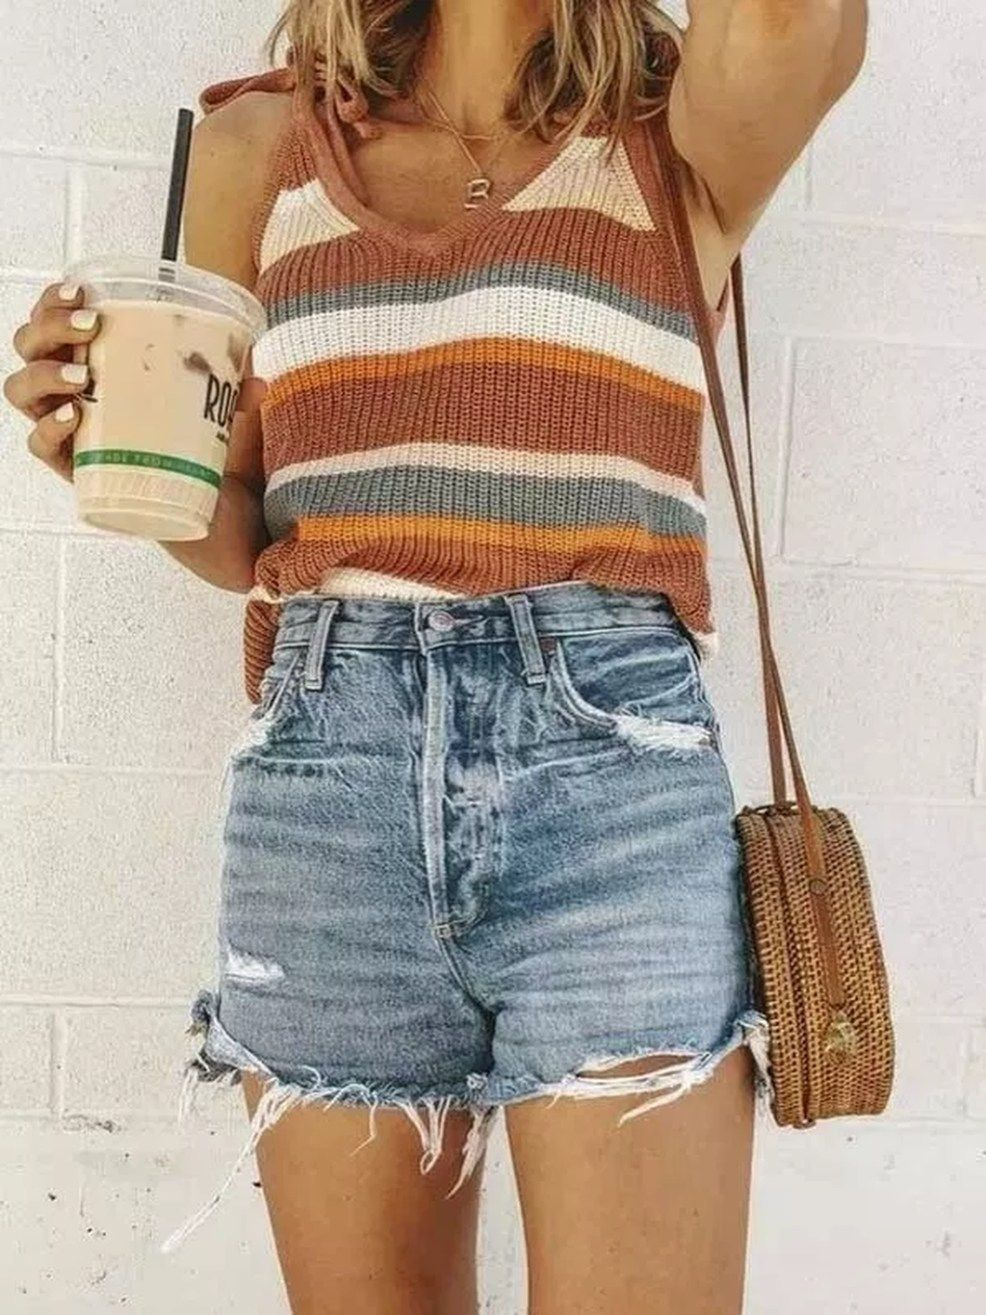 Hottest Summer Outfits Ideas To Wear Now To Looks Elegant 17 #summerdinneroutfits